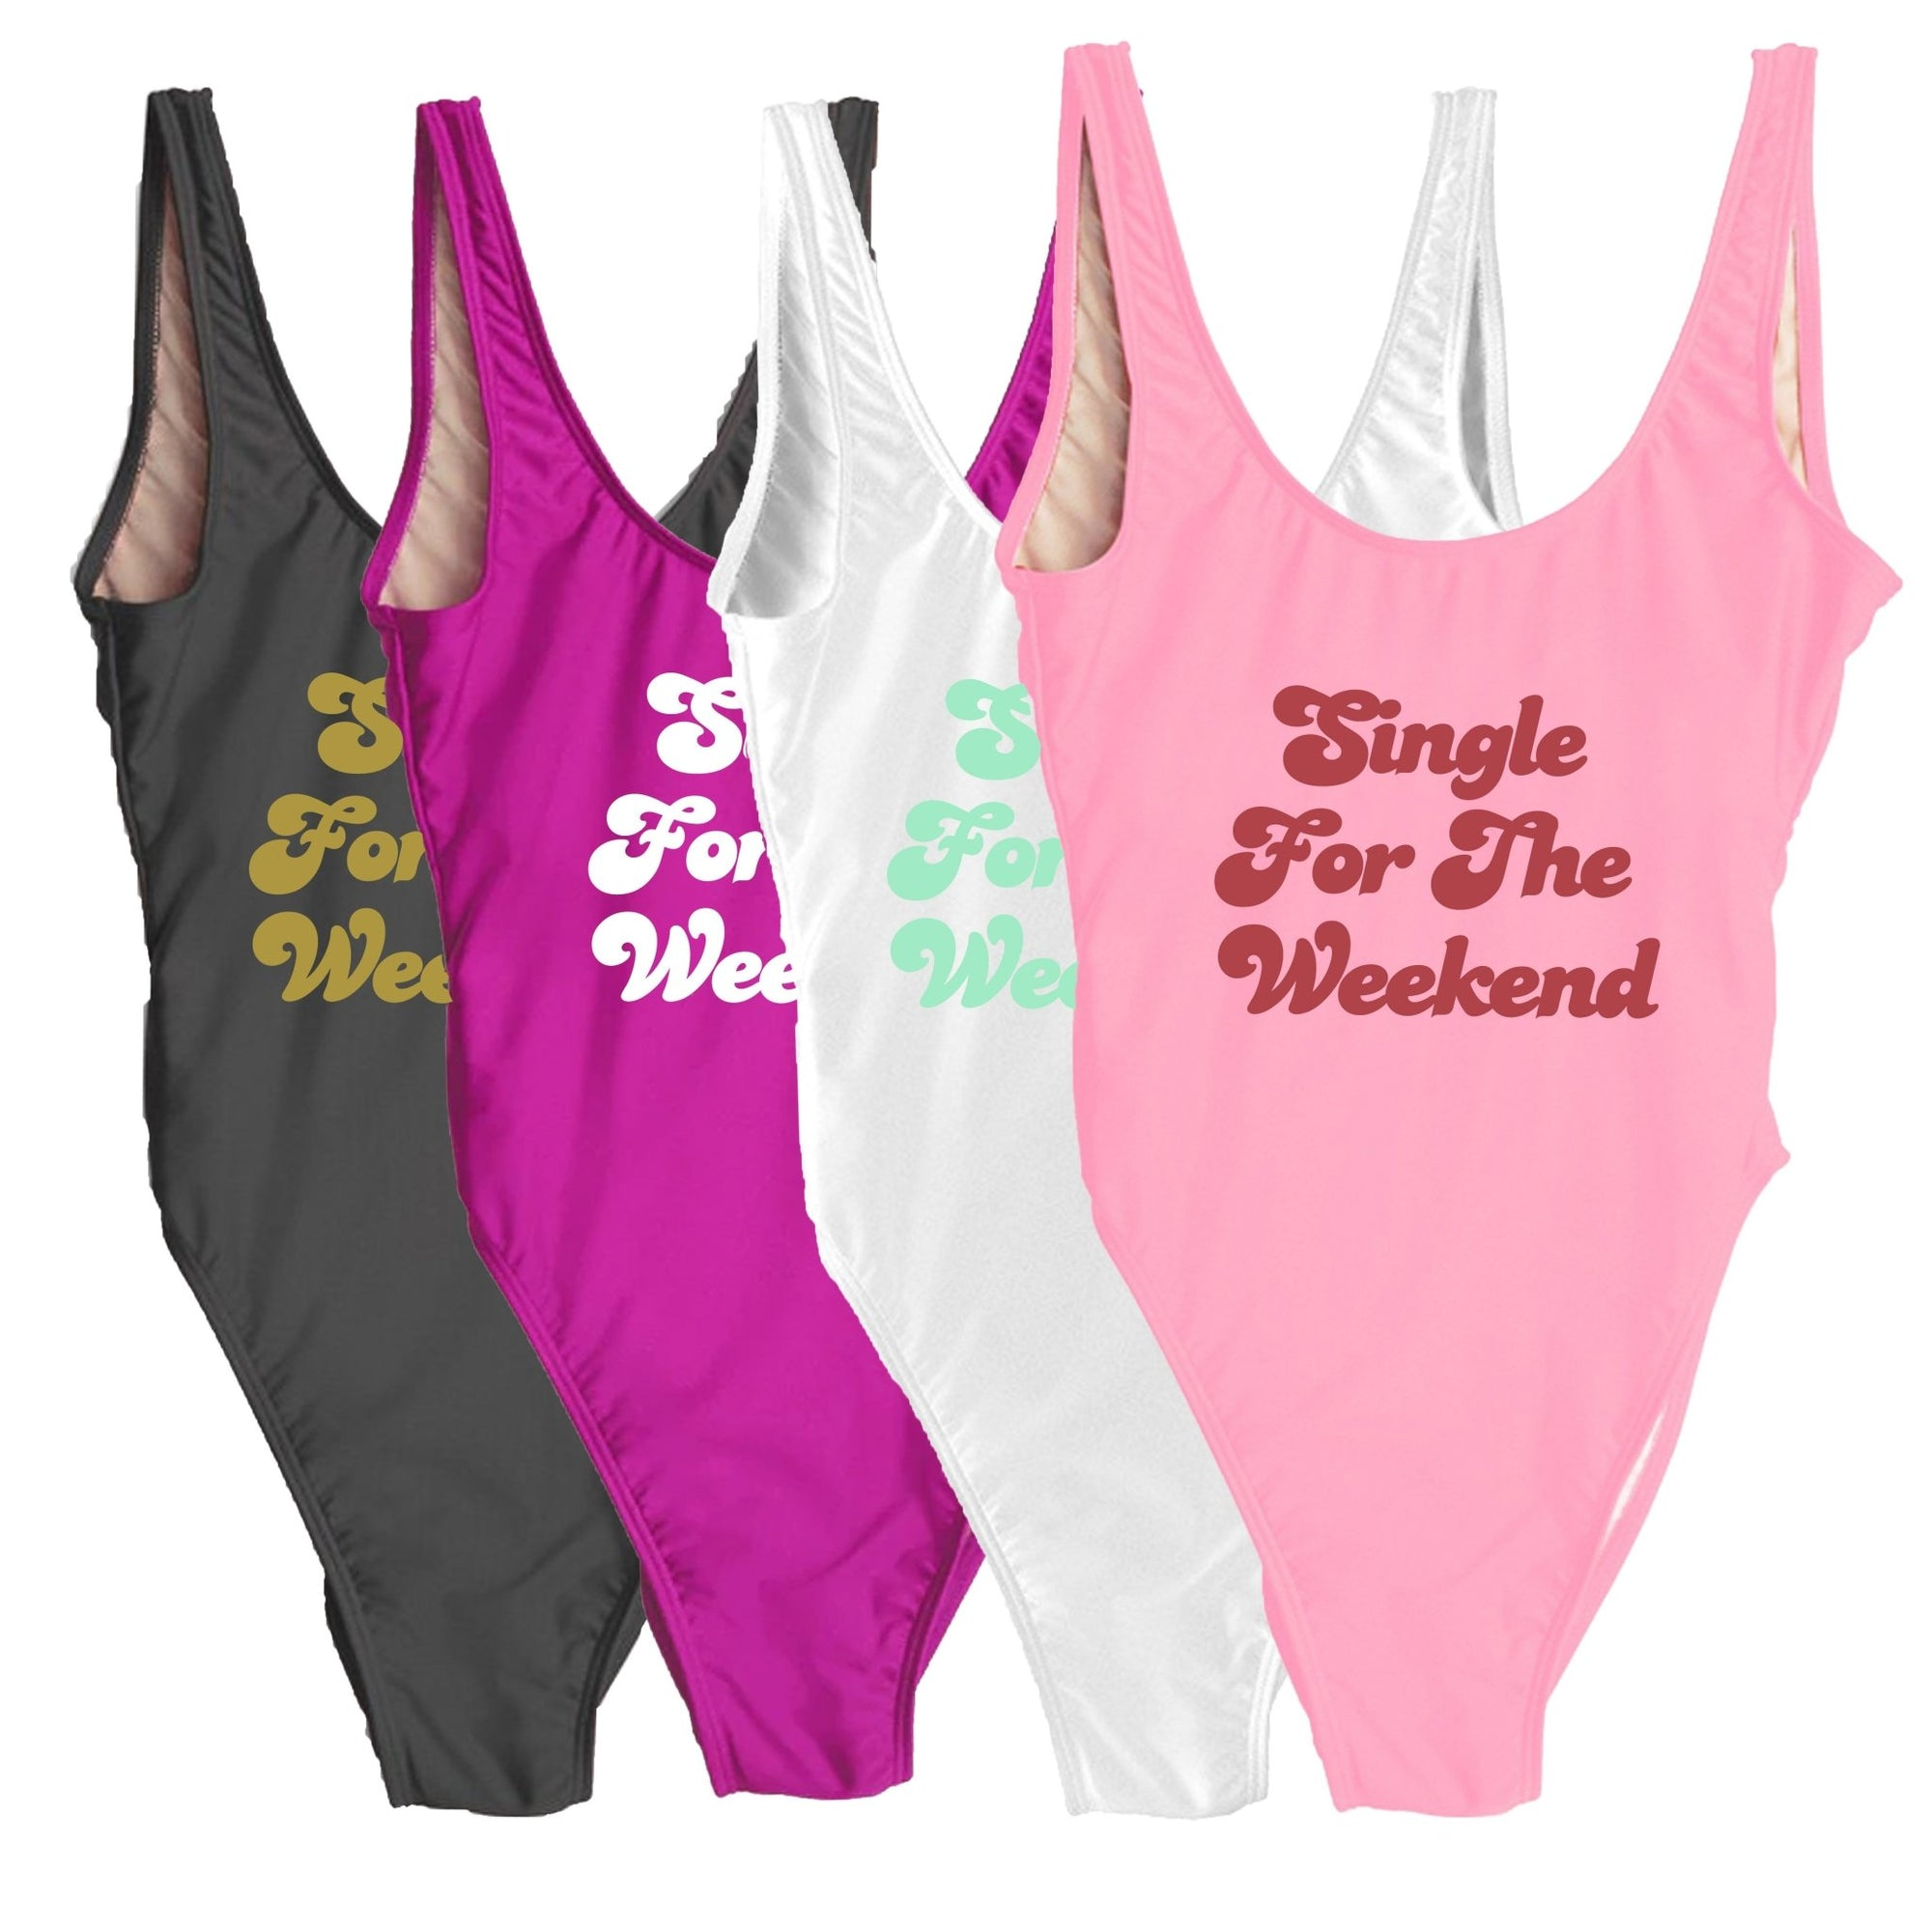 Single For The Weekend Swimsuit - Sprinkled With Pink #bachelorette #custom #gifts